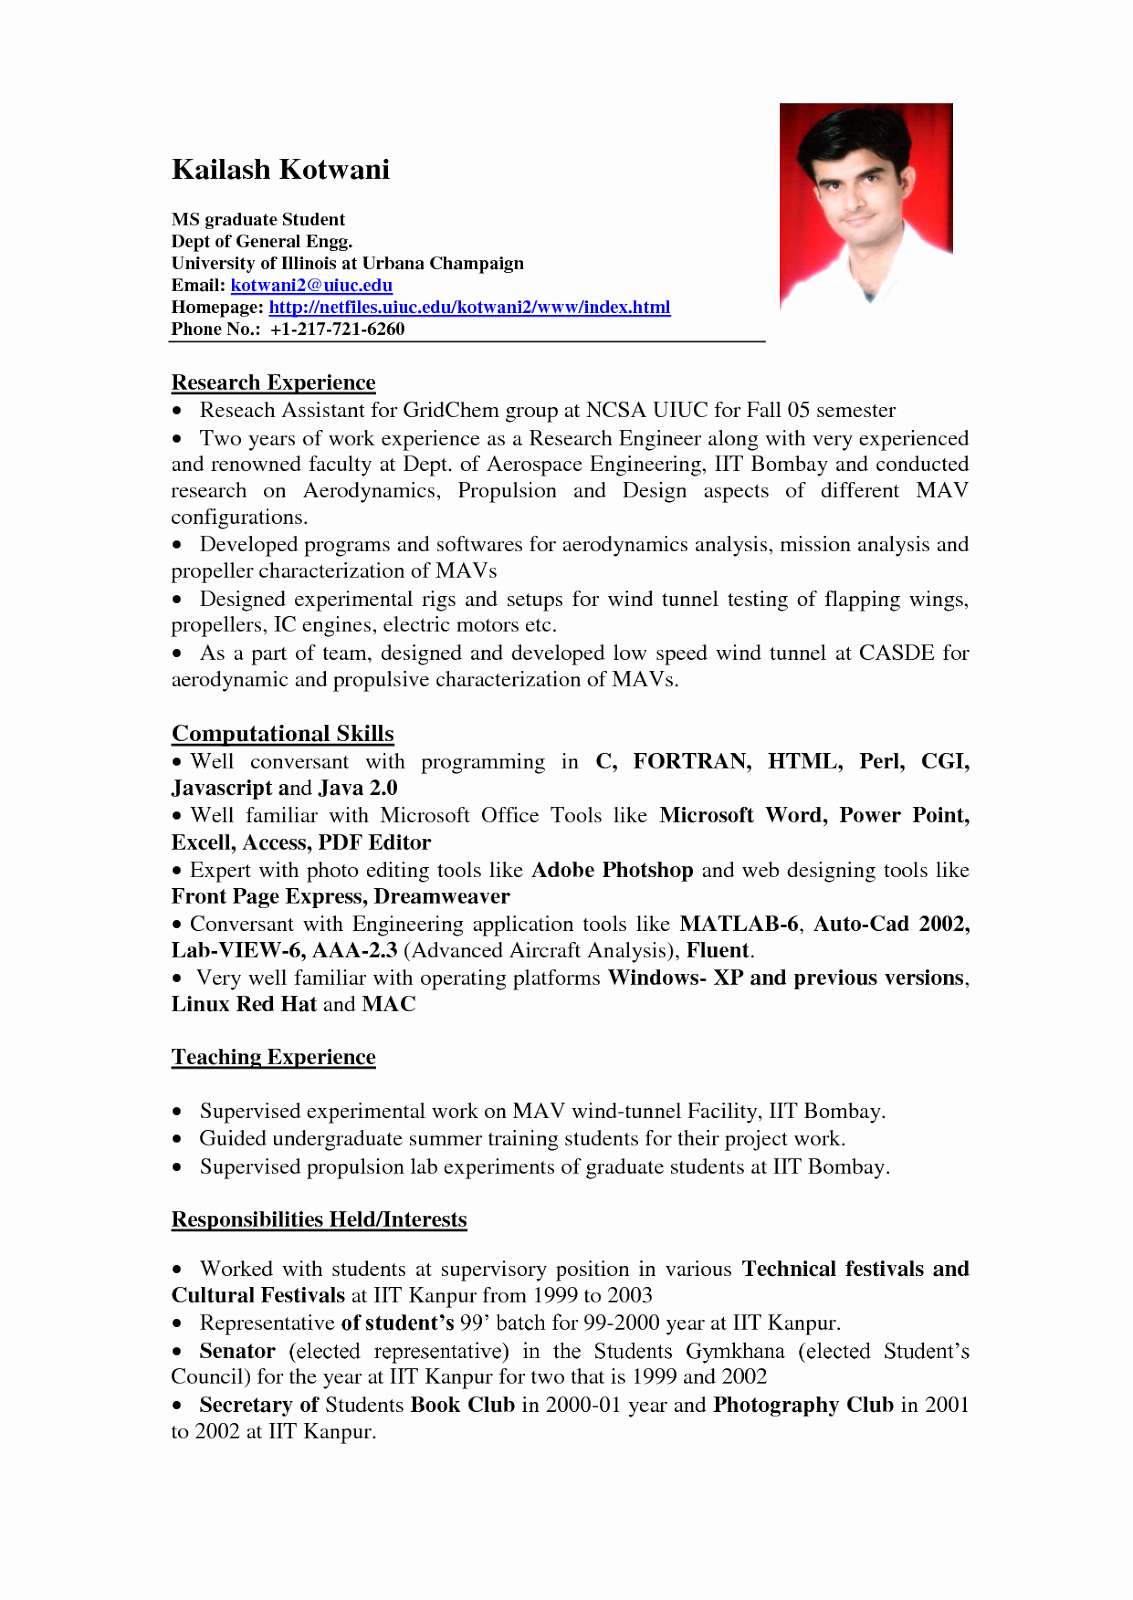 Cv Samples for Students Best Of Sample Resume format for Students